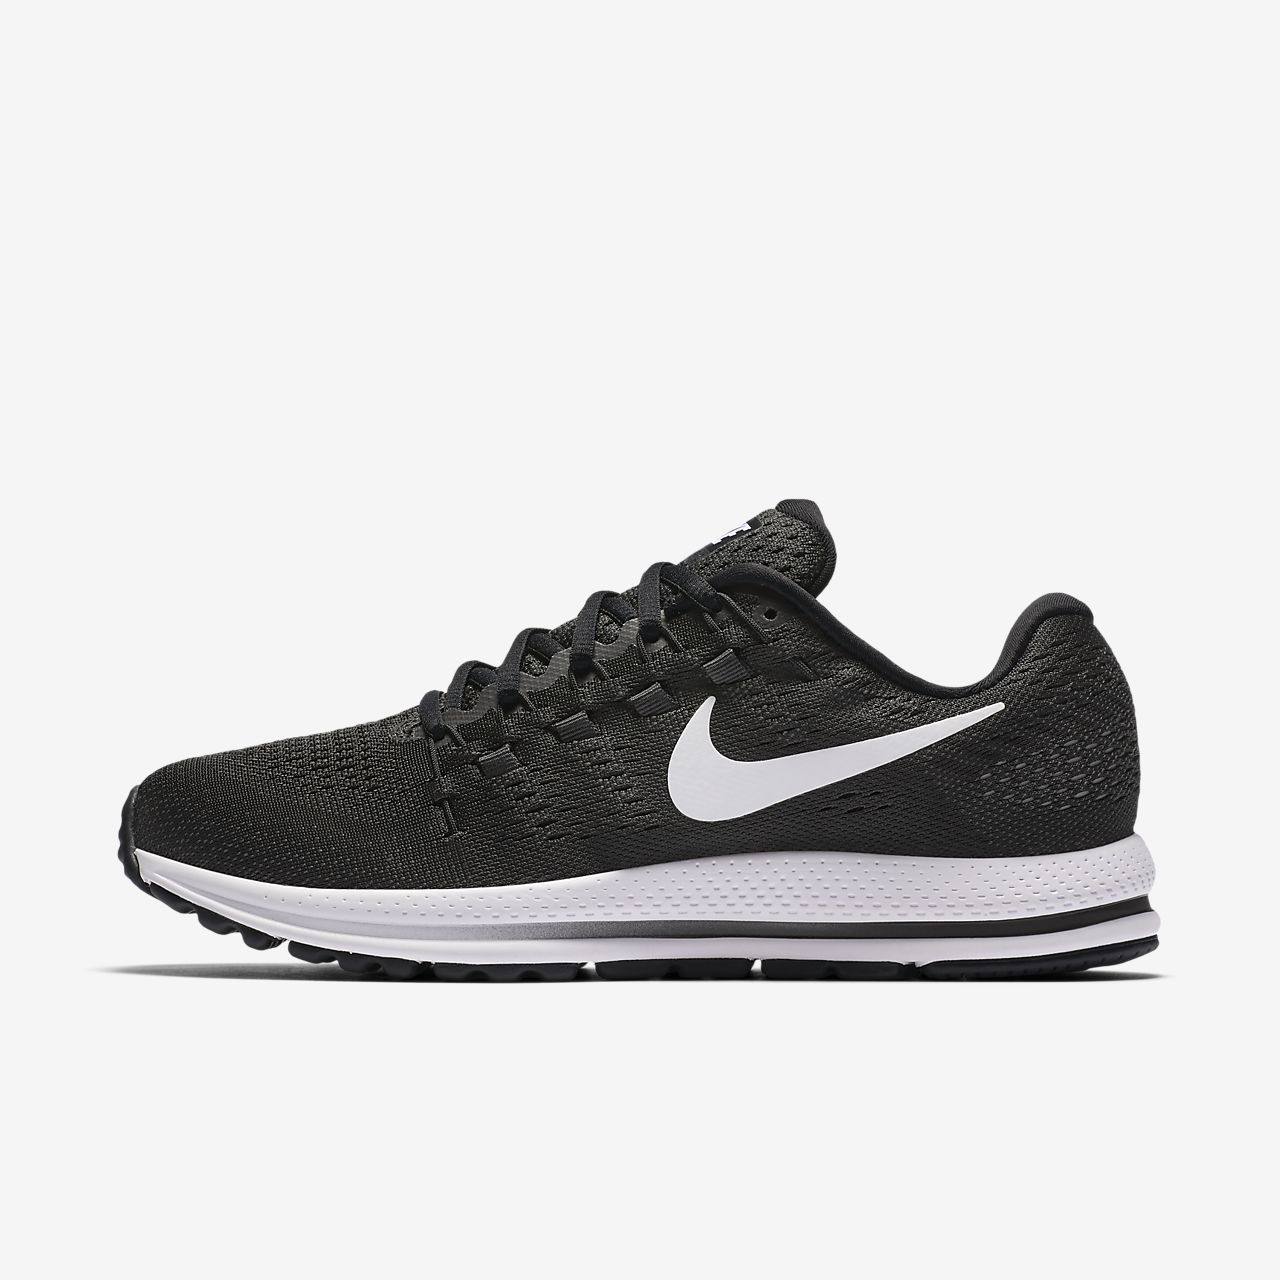 super popular bccb5 a14b2 Running NIKE Air Zoom Vomero BLACK WHITE